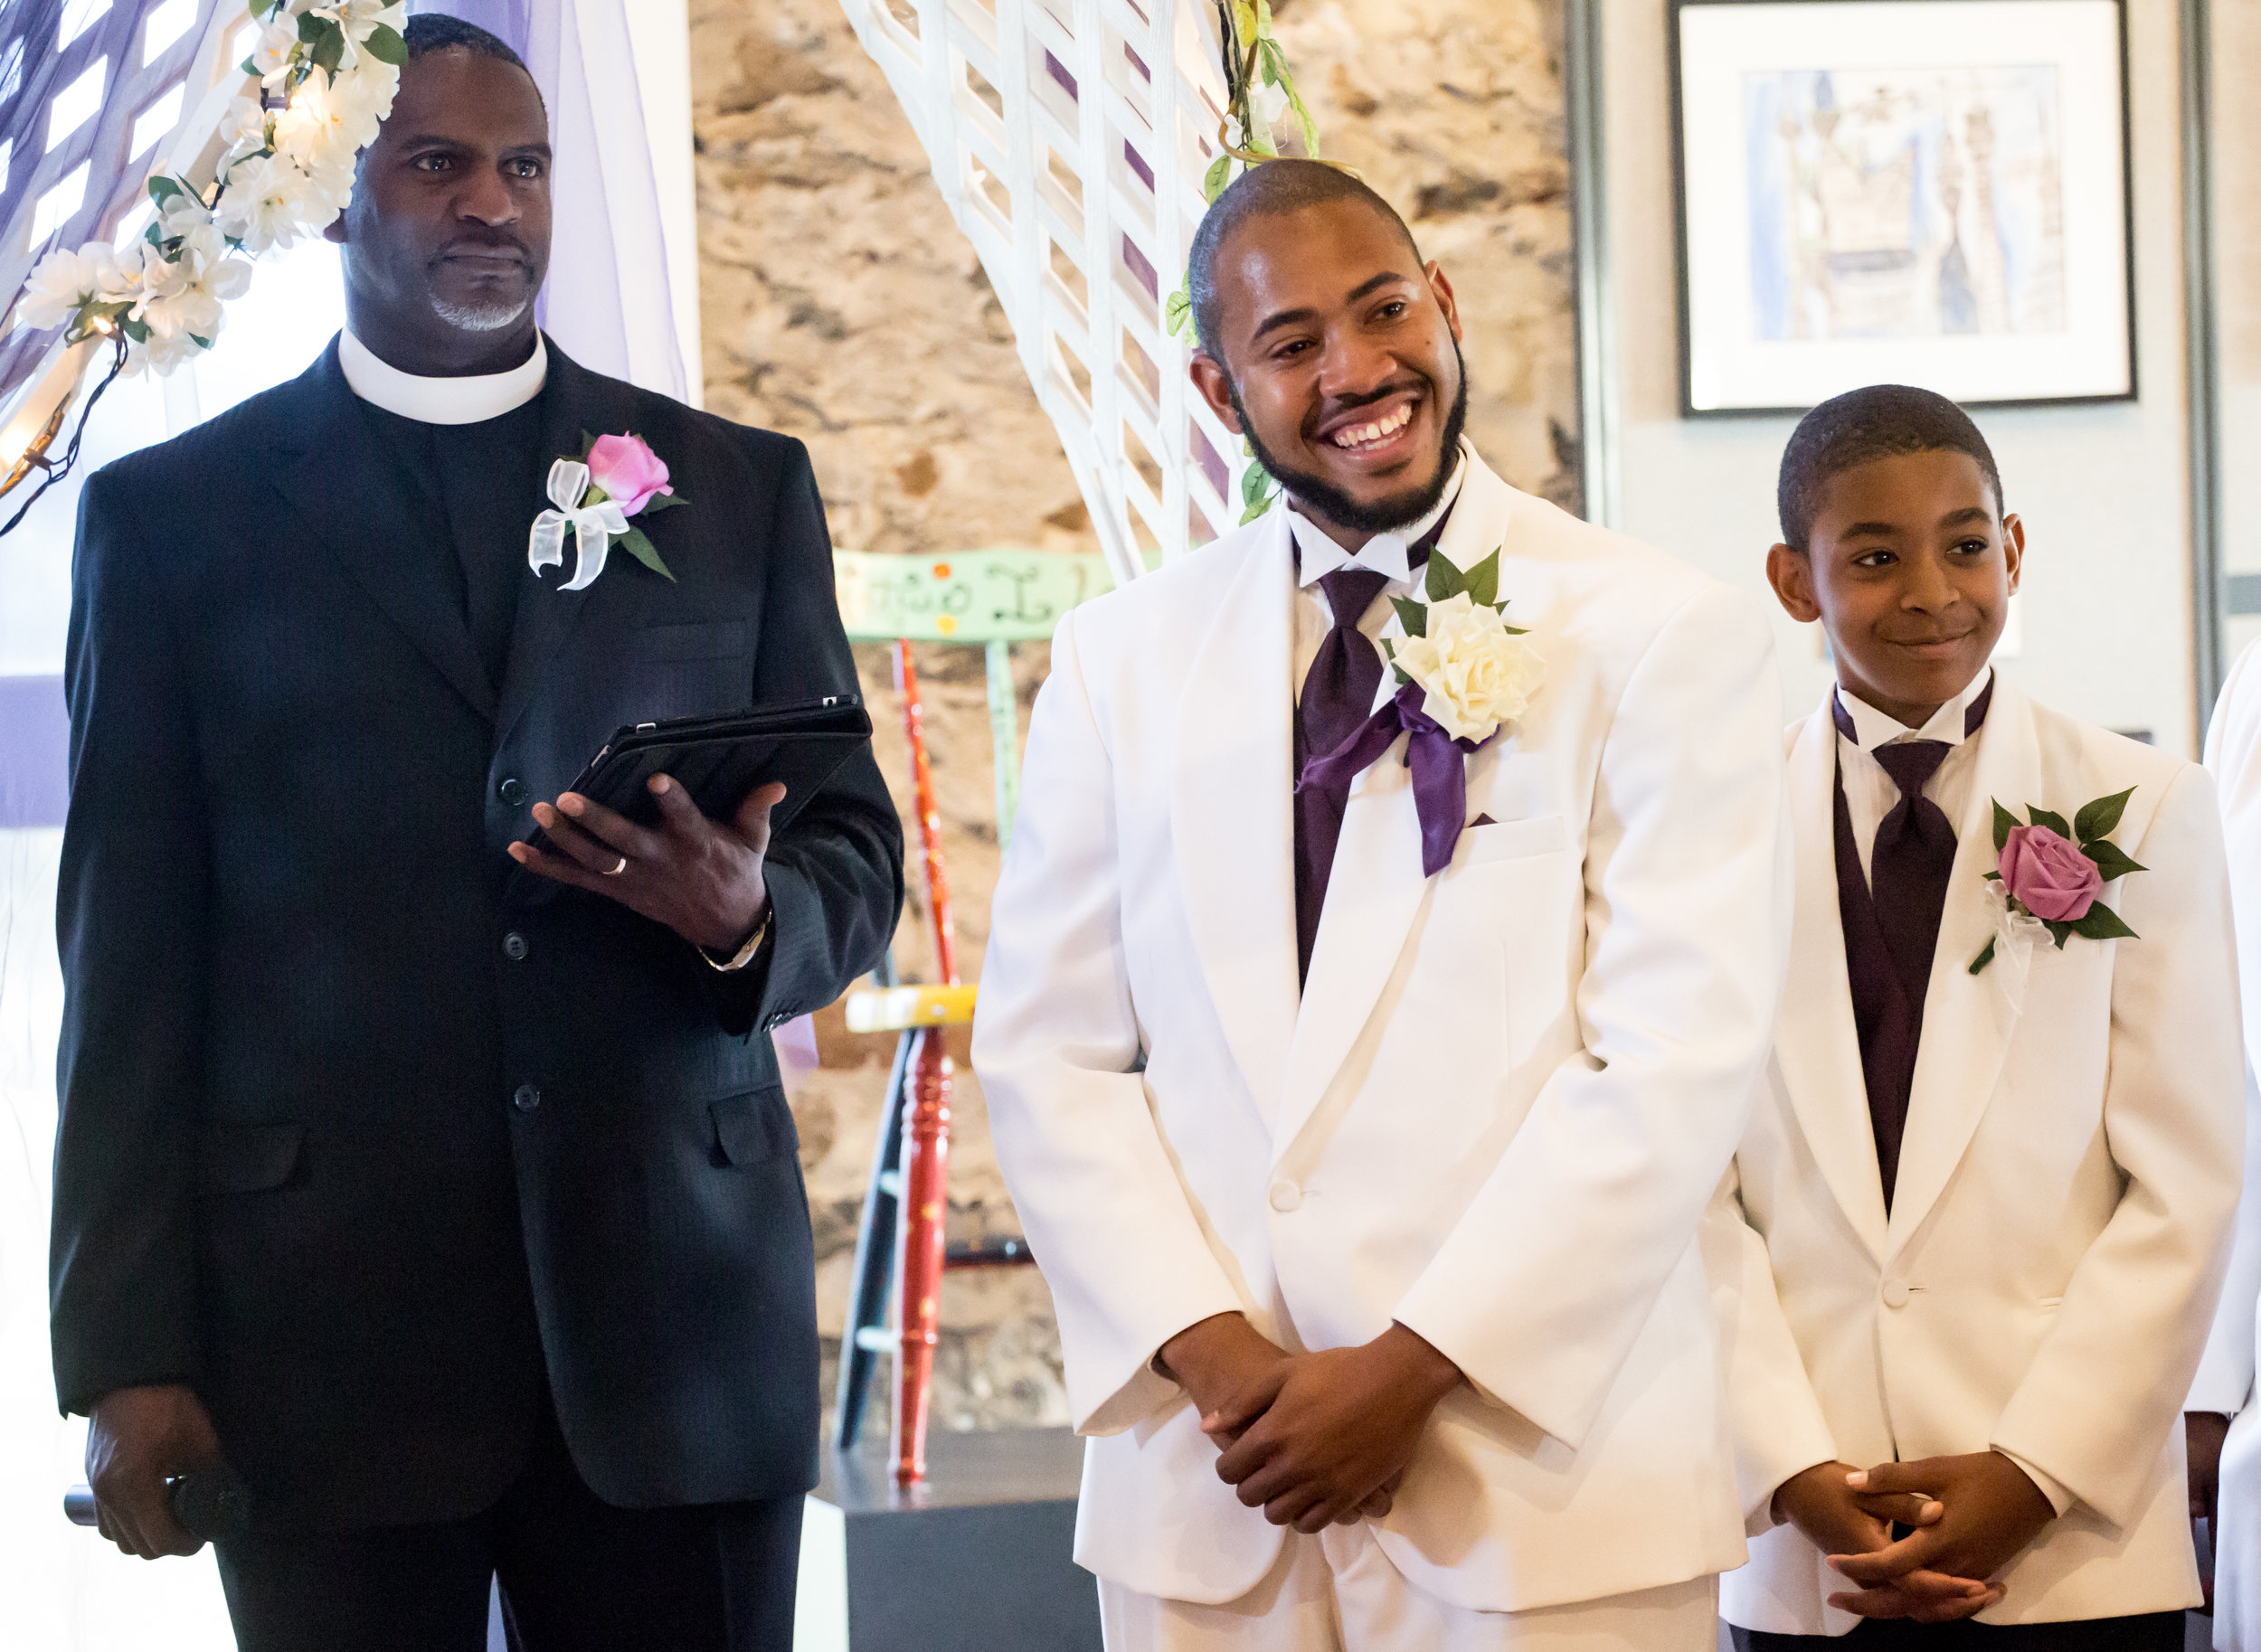 5-24-14_Errol Ebanks_The Finney Wedding_0417.jpg